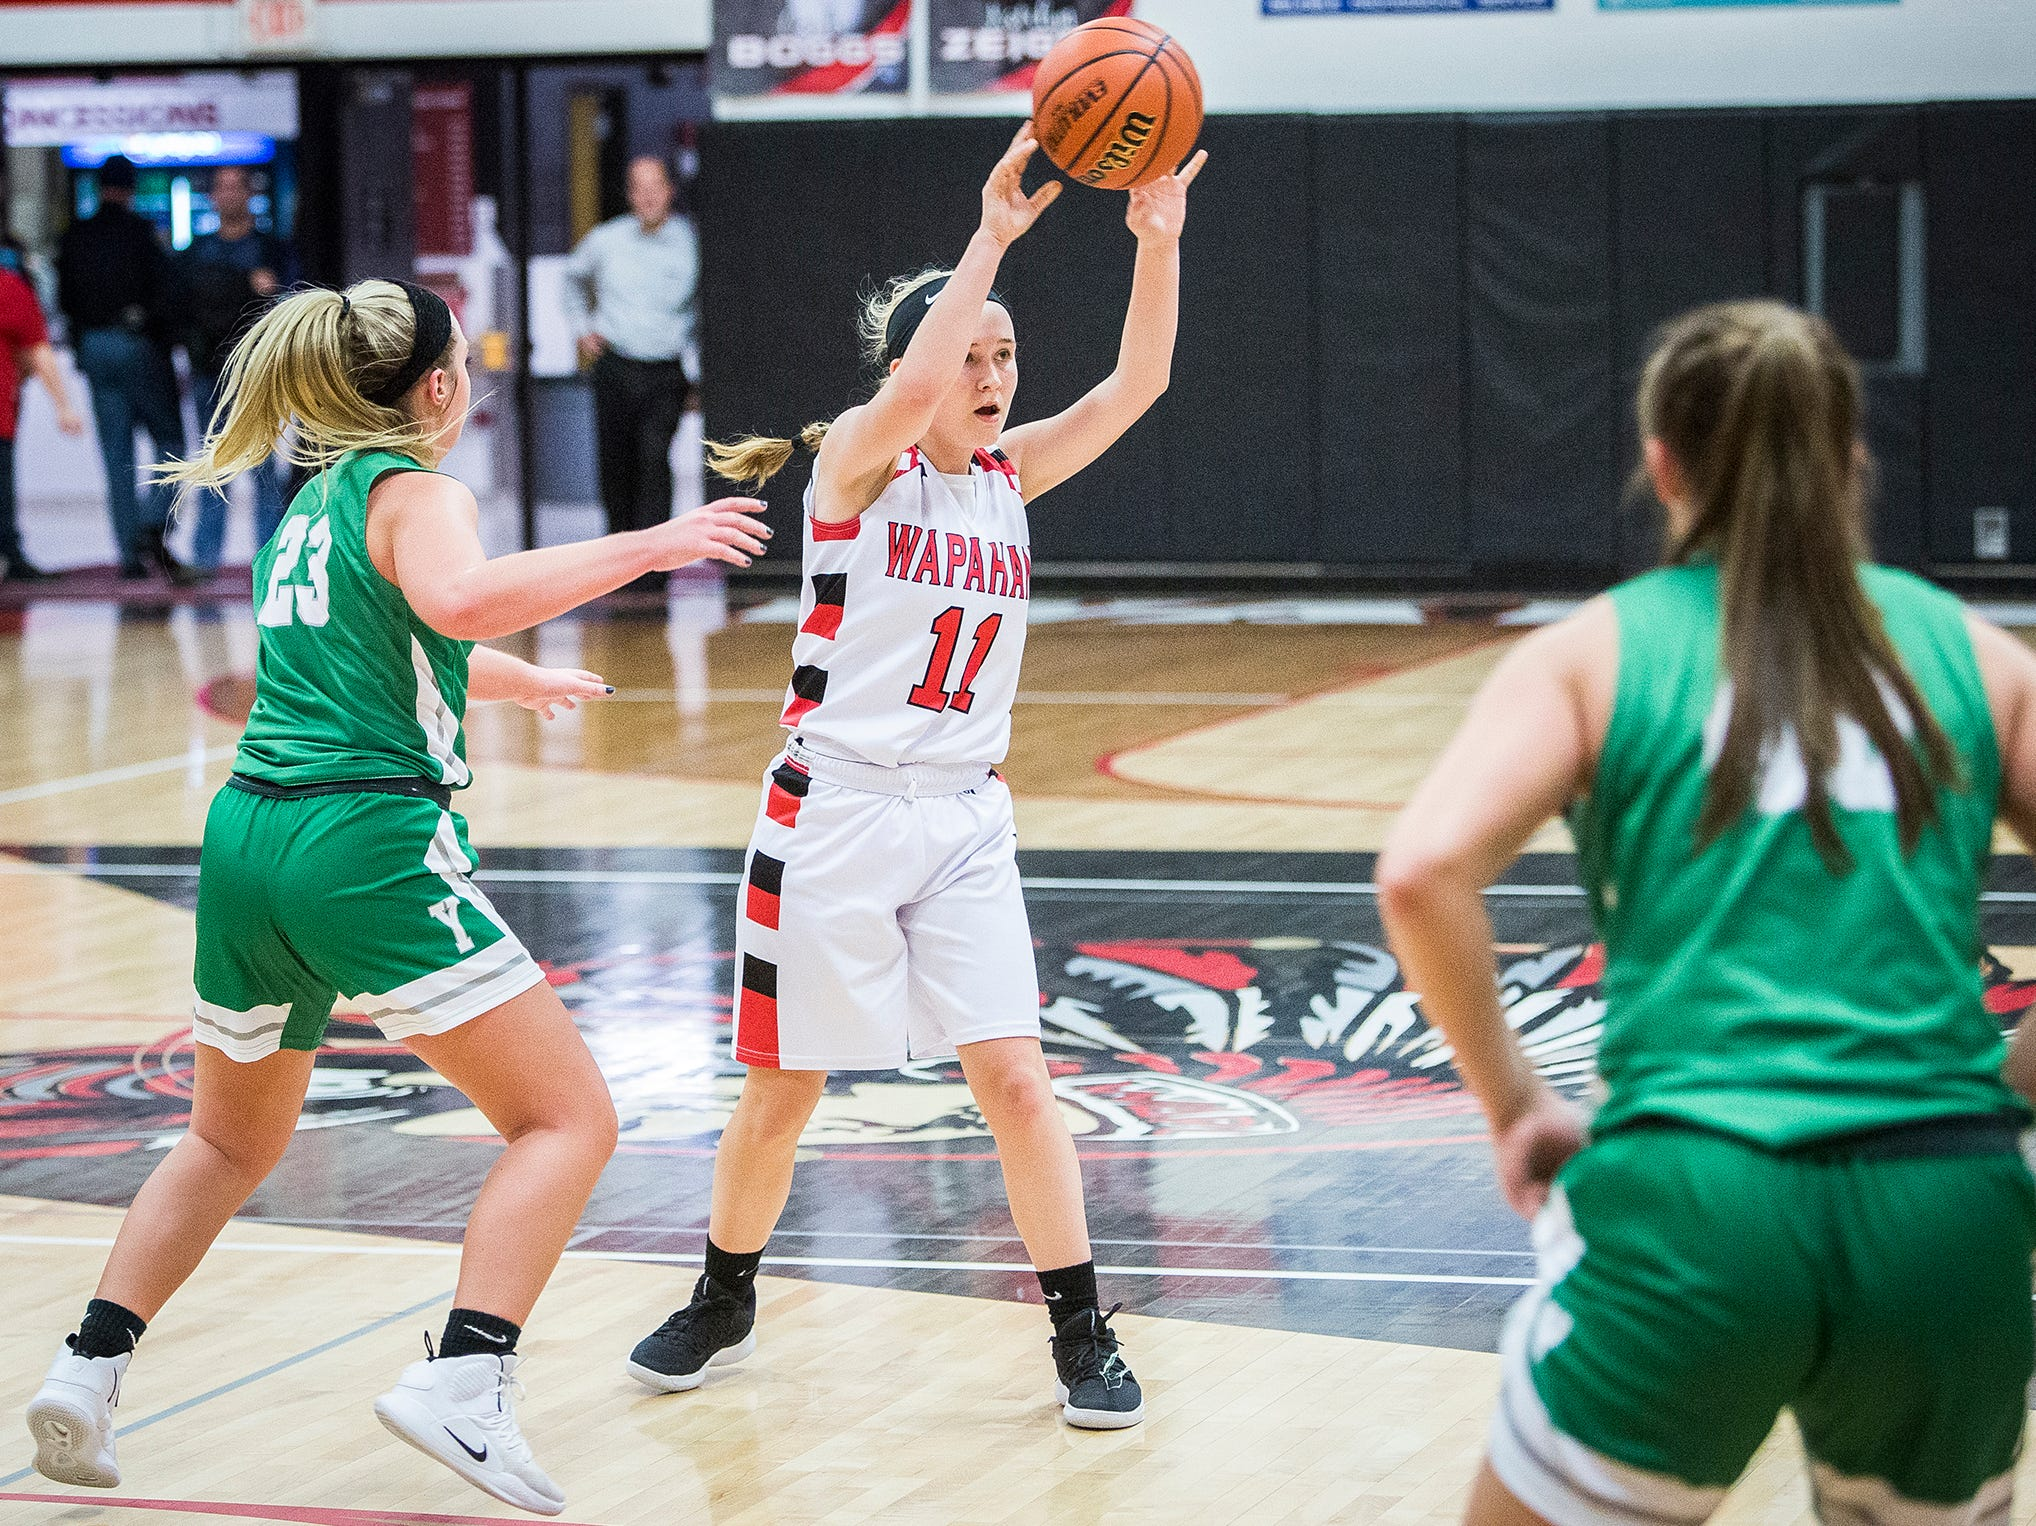 Wapahani's Madison Thompson passes the ball against Yorktown's defense during their game at Wapahani High School Tuesday, Dec. 4, 2018.